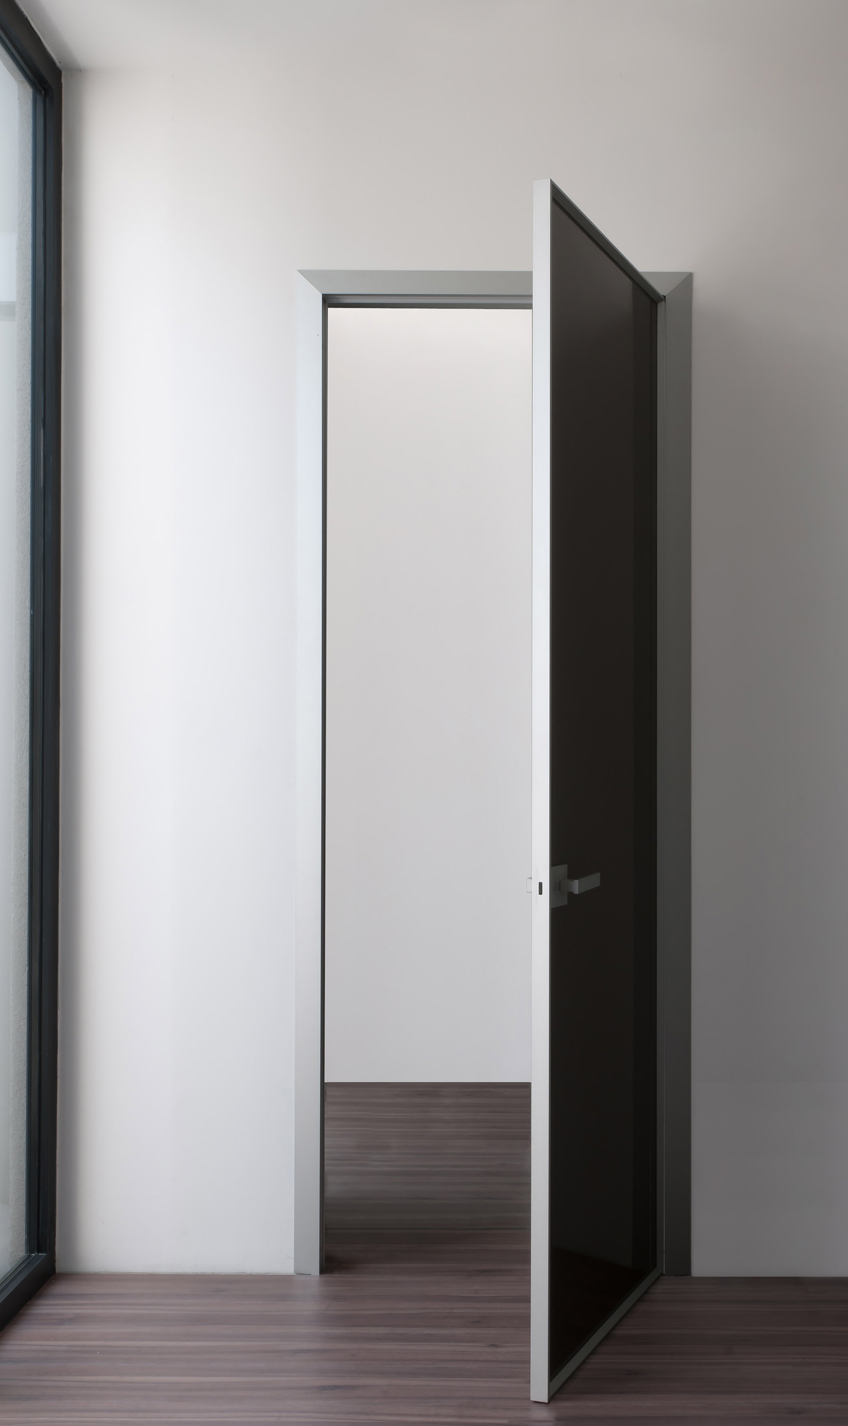 Albed's Filum door comprises glass in an aluminium frame. Fully recyclable.